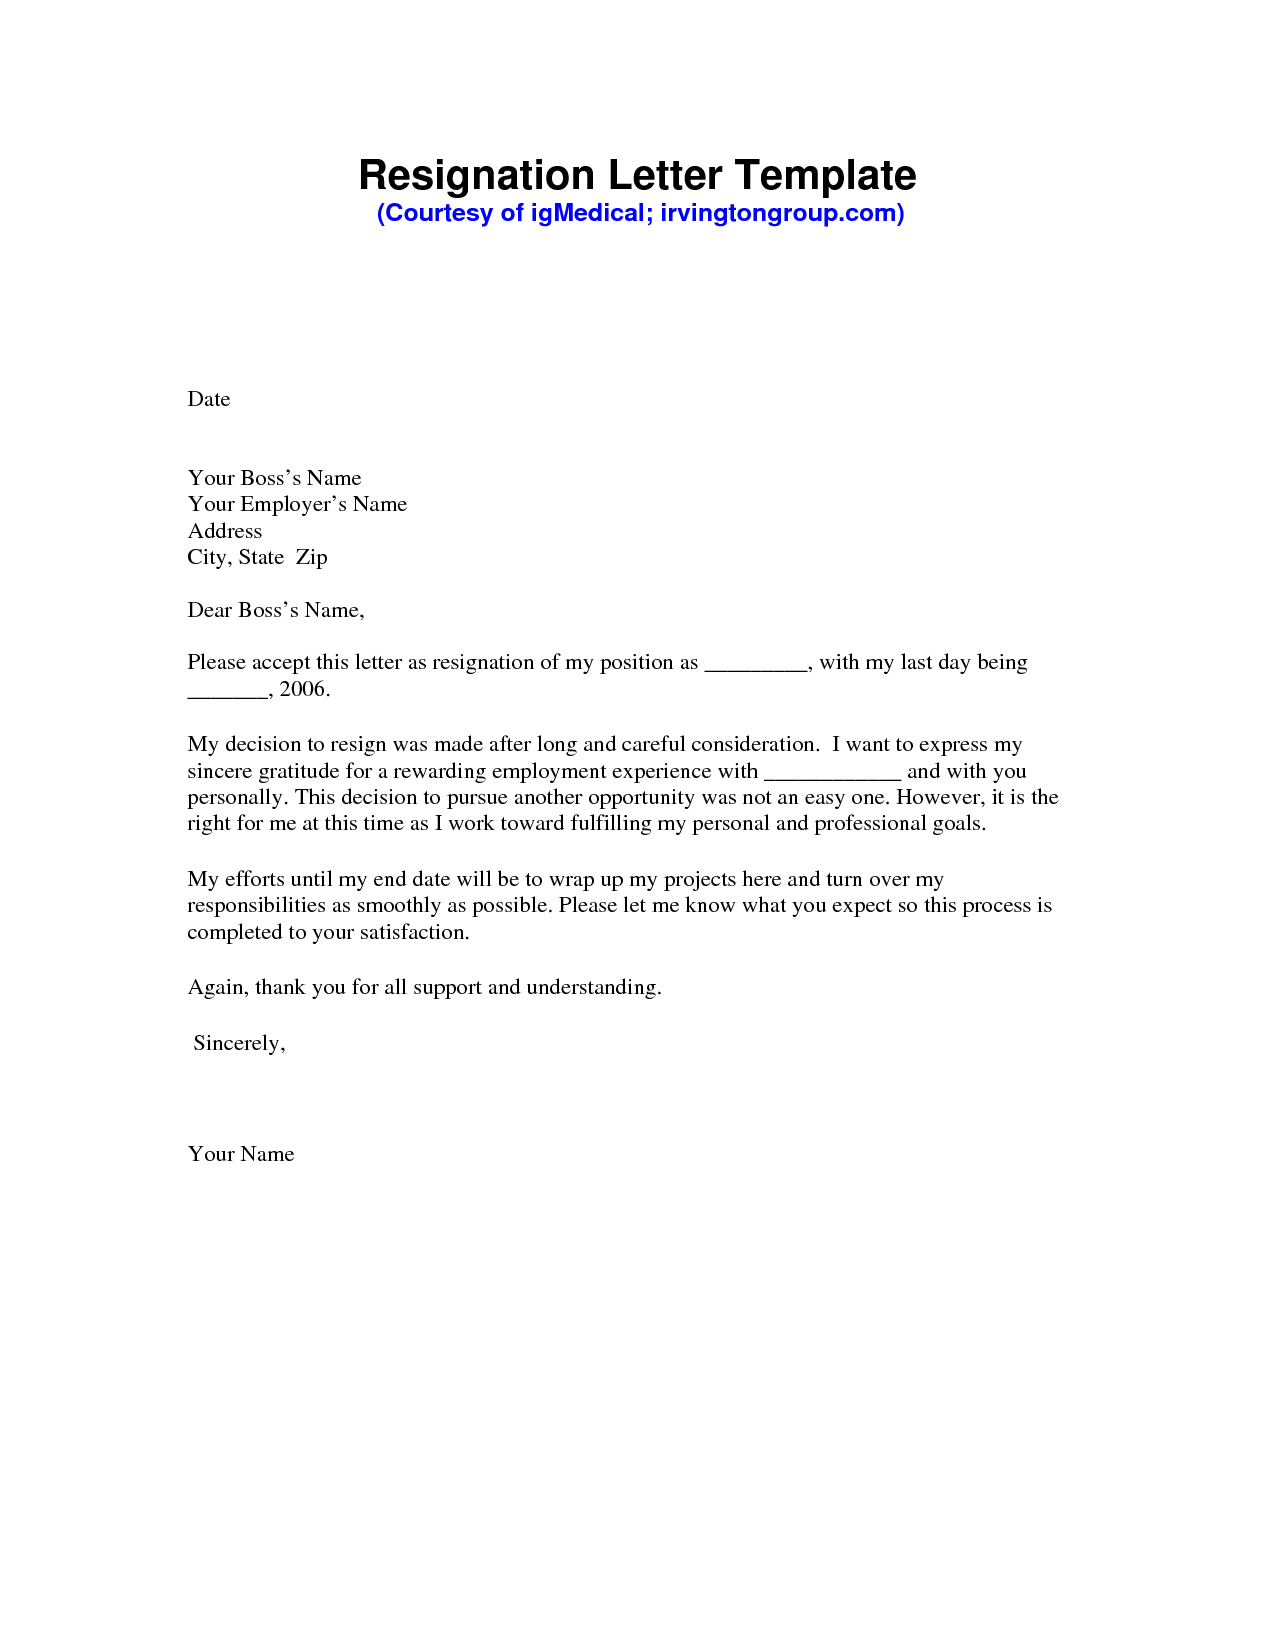 resignation letter sample pdf resignation letter resignation letter sample pdf